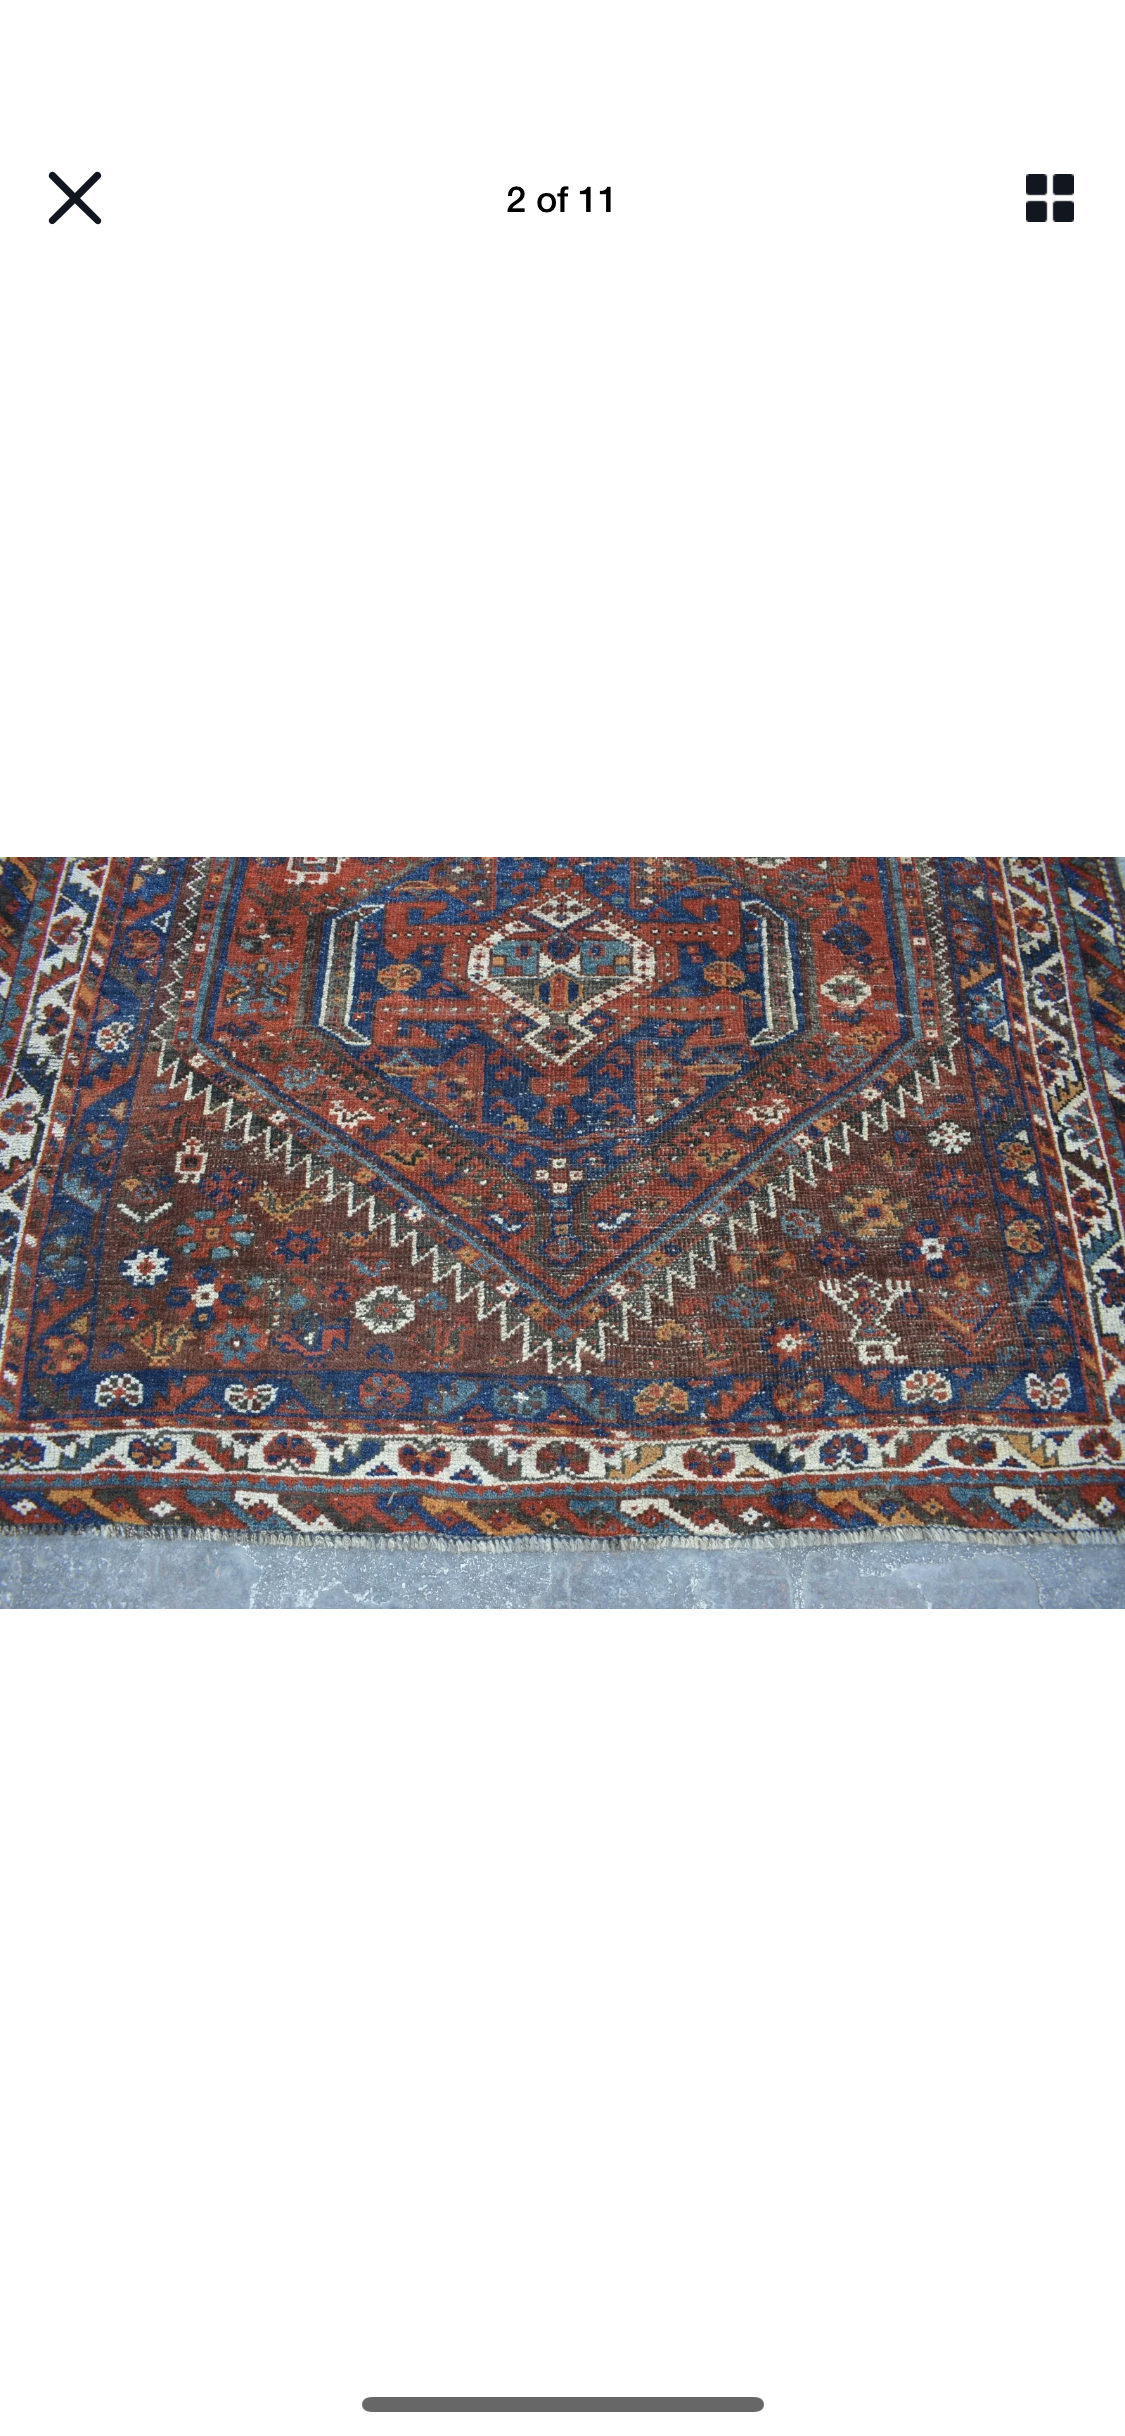 Plan To Purchase This Vintage Rug On Ebay Love The Colors And Pulls The Room Together Size Is 5x6 So Planning To Put It In 2020 Large Jute Rug Vintage